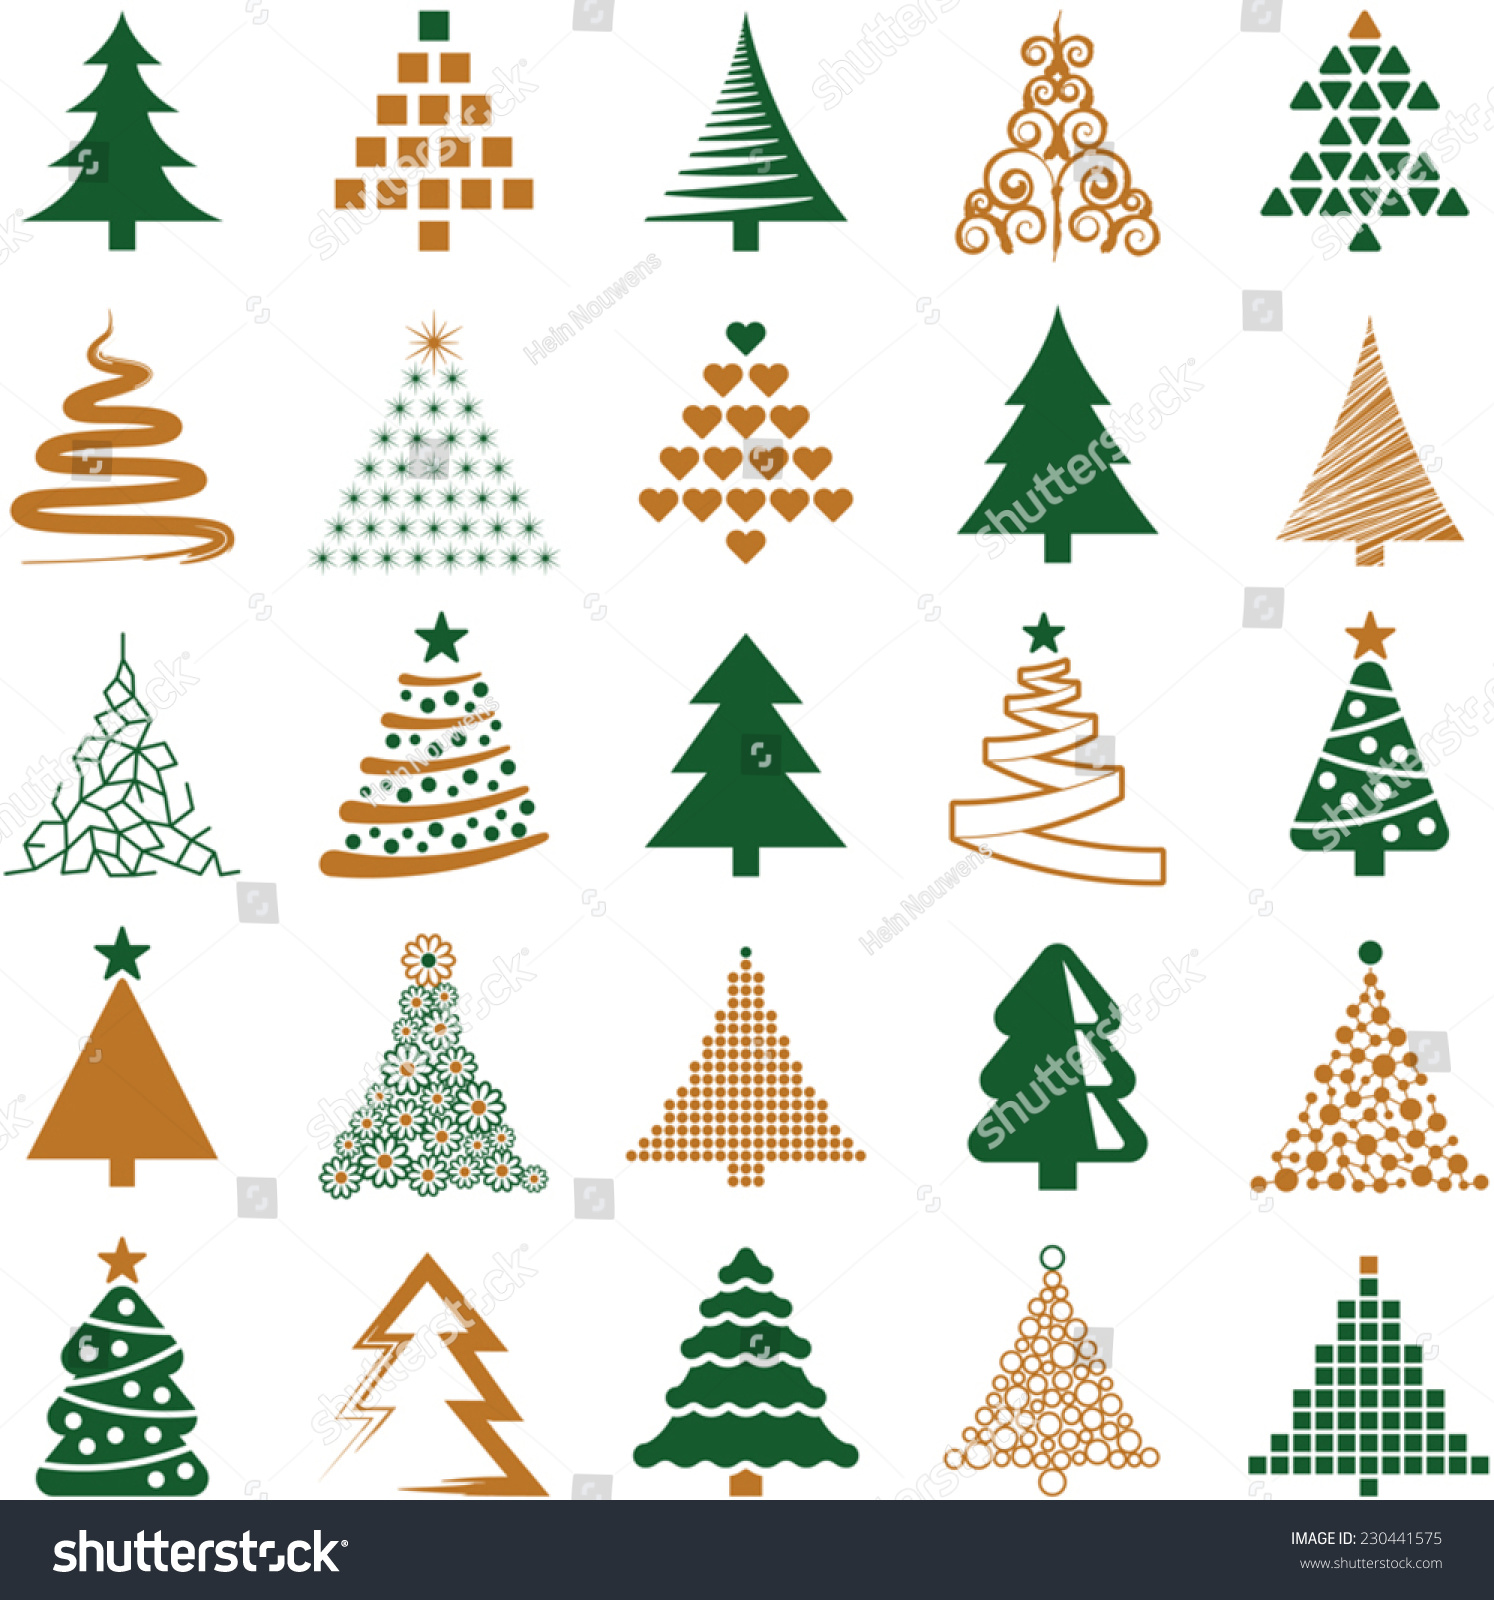 Christmas tree icon collection vector illustration stock